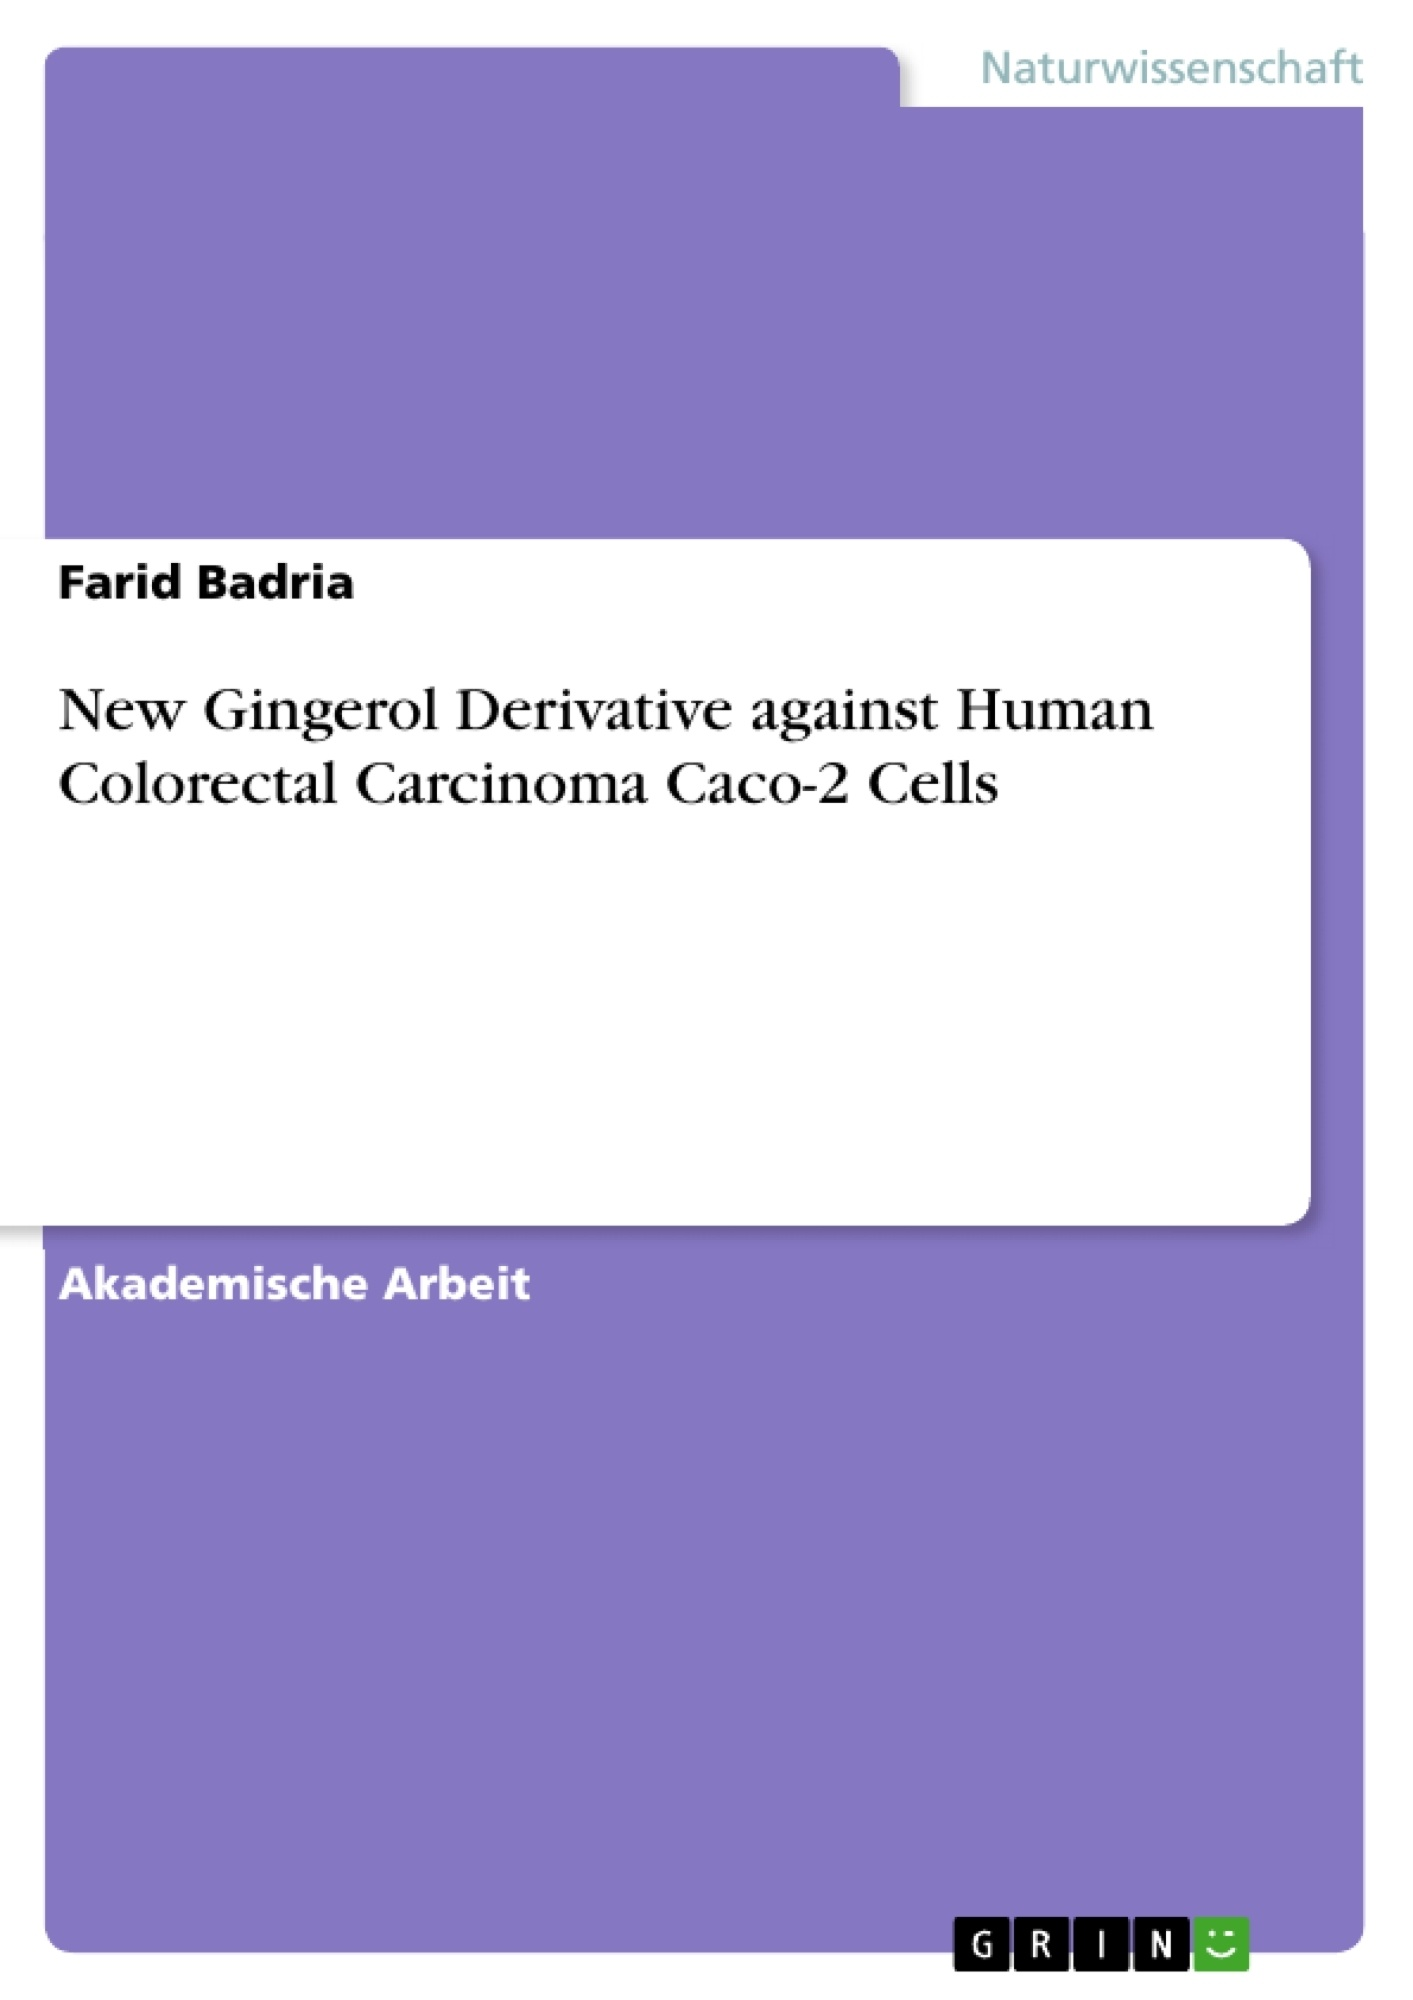 Titel: New Gingerol Derivative against Human Colorectal Carcinoma Caco-2 Cells